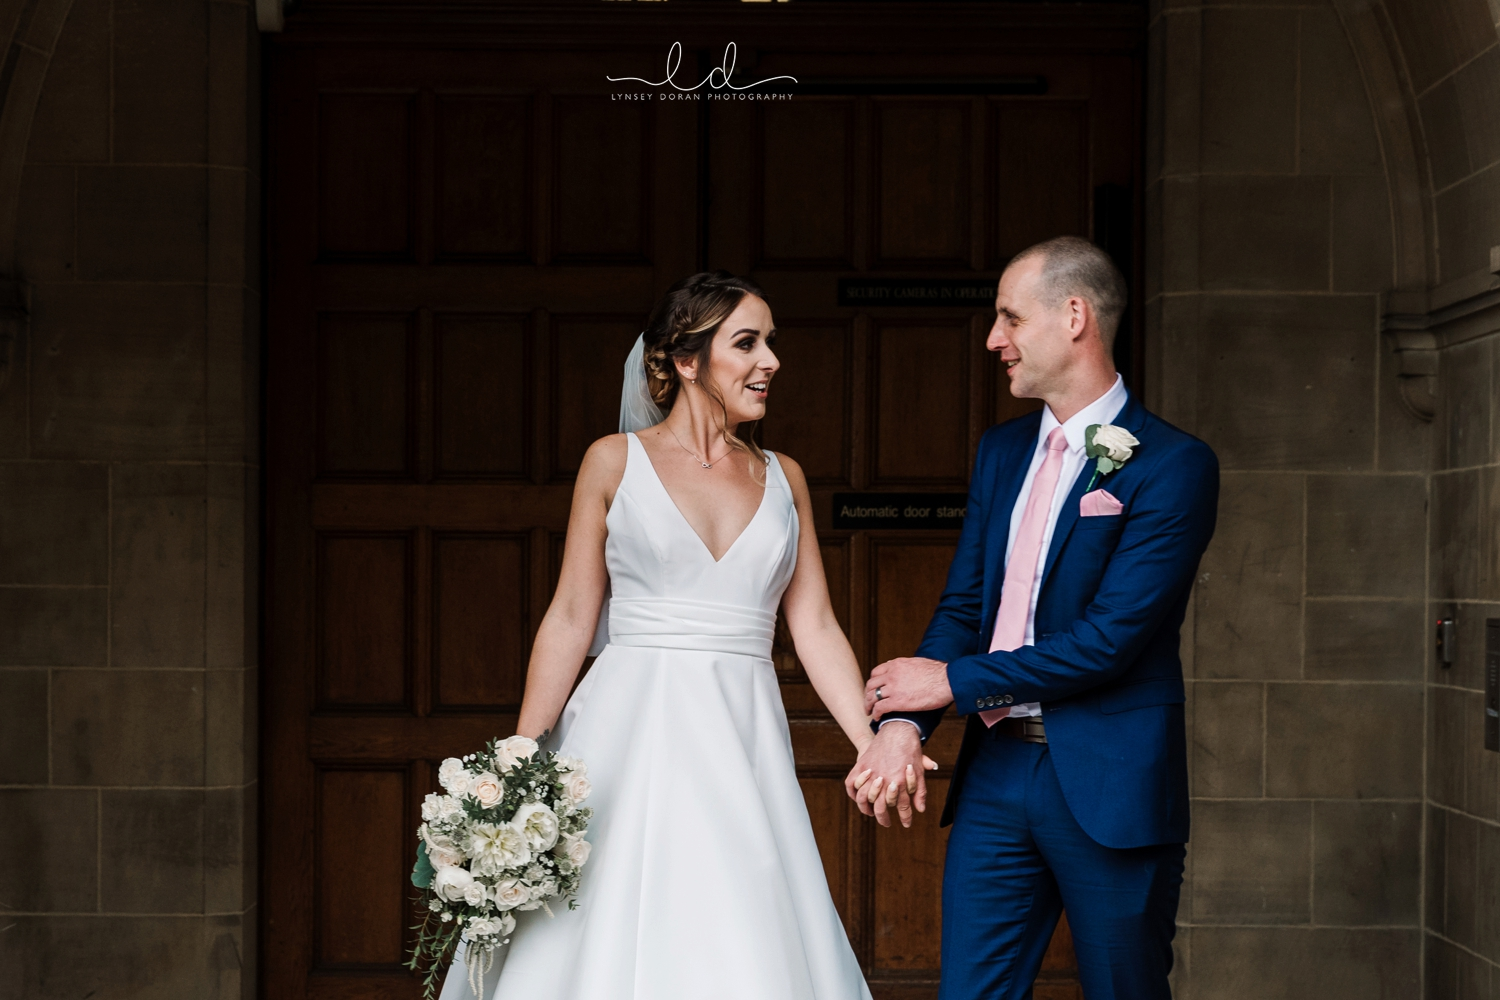 Relaxed Wedding Photographers Yorkshire | West Yorkshire Wedding Photography_0017